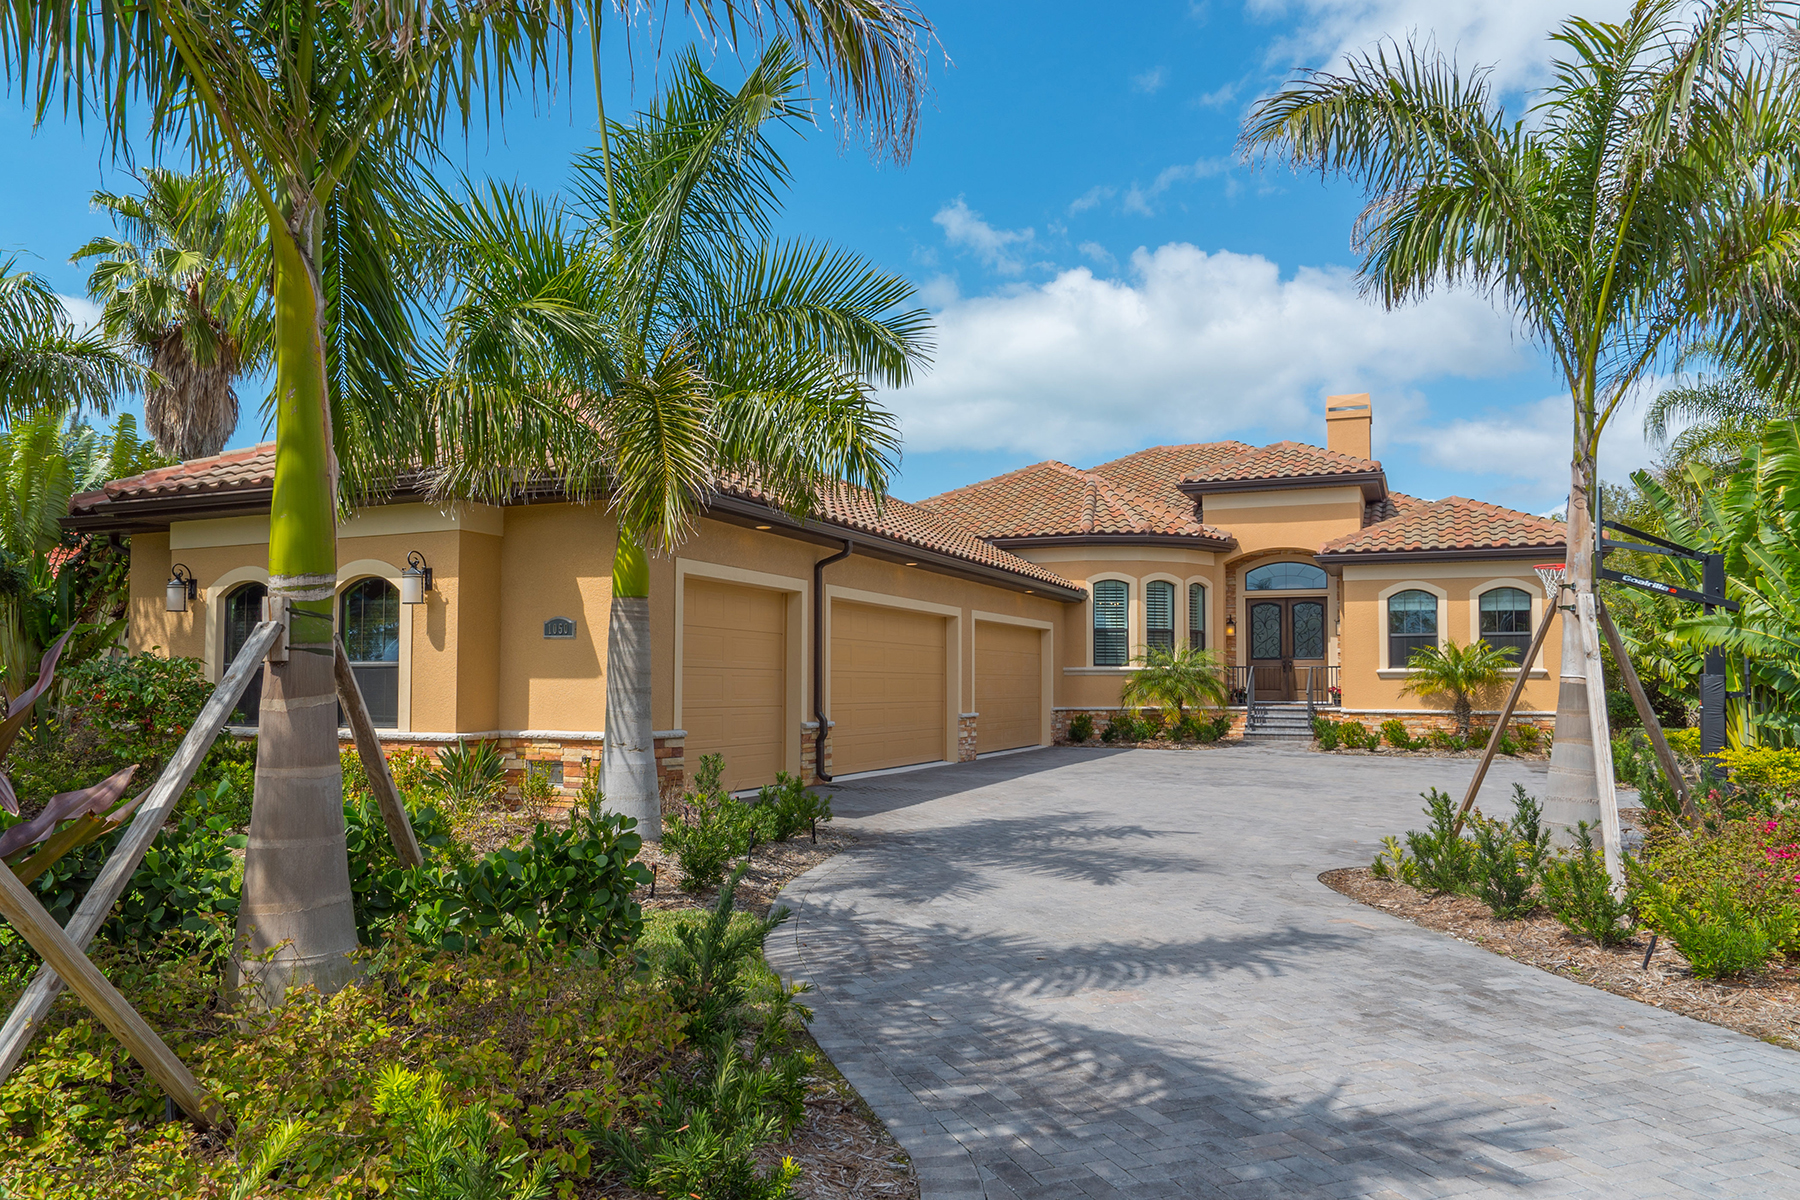 Moradia para Venda às CASEY KEY ESTATES 1050 Gulf Winds Way Nokomis, Florida, 34275 Estados Unidos